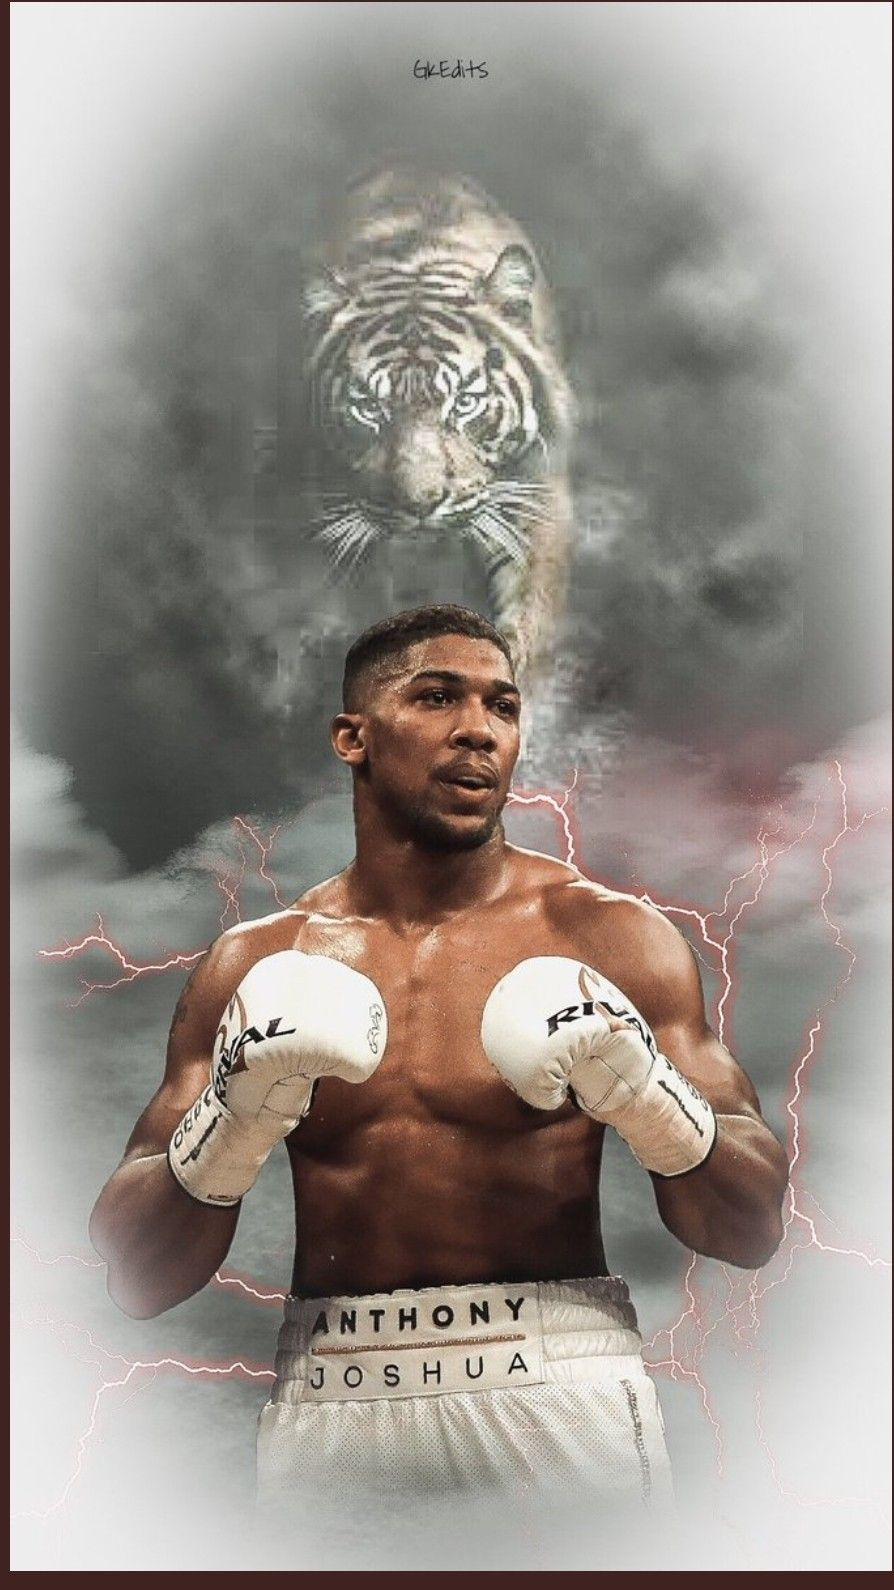 Anthony Joshua Boxing It will Hurt Inspirational Motivational Quote Sign Poster Print Picture